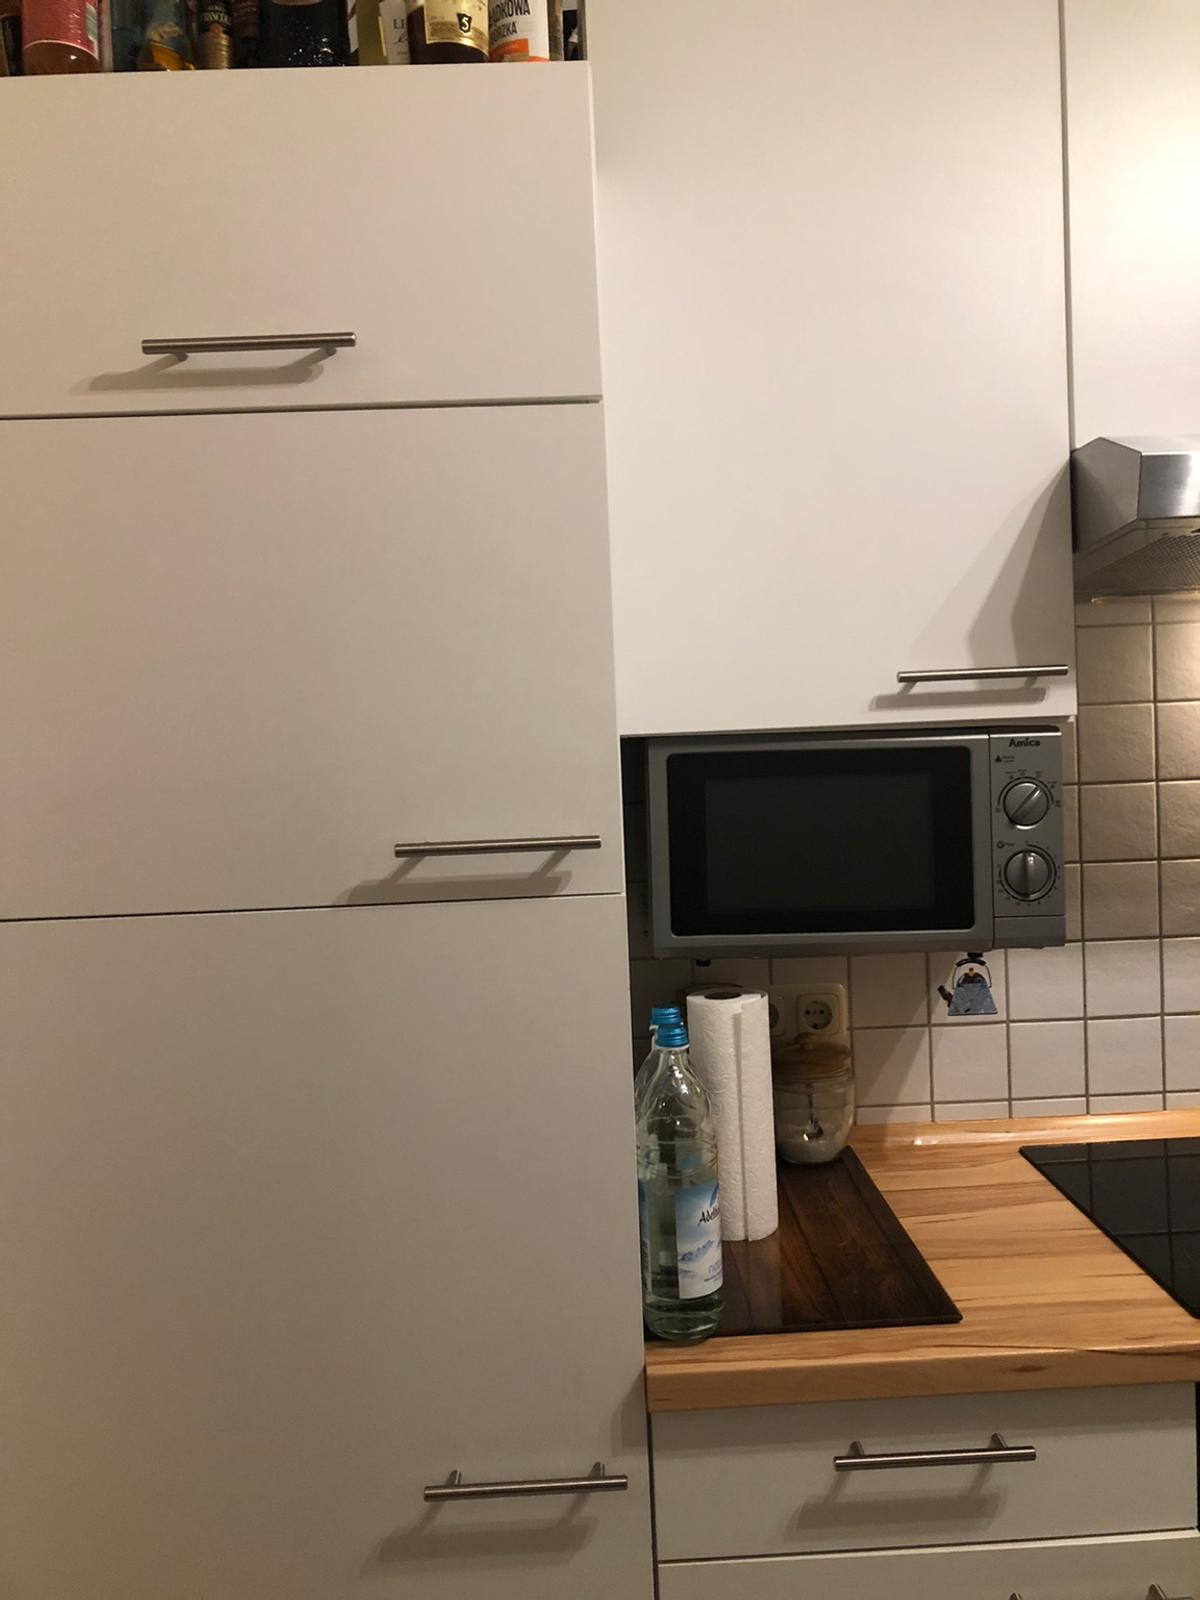 Ikea Küche Ohne Geräte Preis Ikea Küche Inkl. Geräte In 84030 Ergolding For €1,800.00 For Sale | Shpock